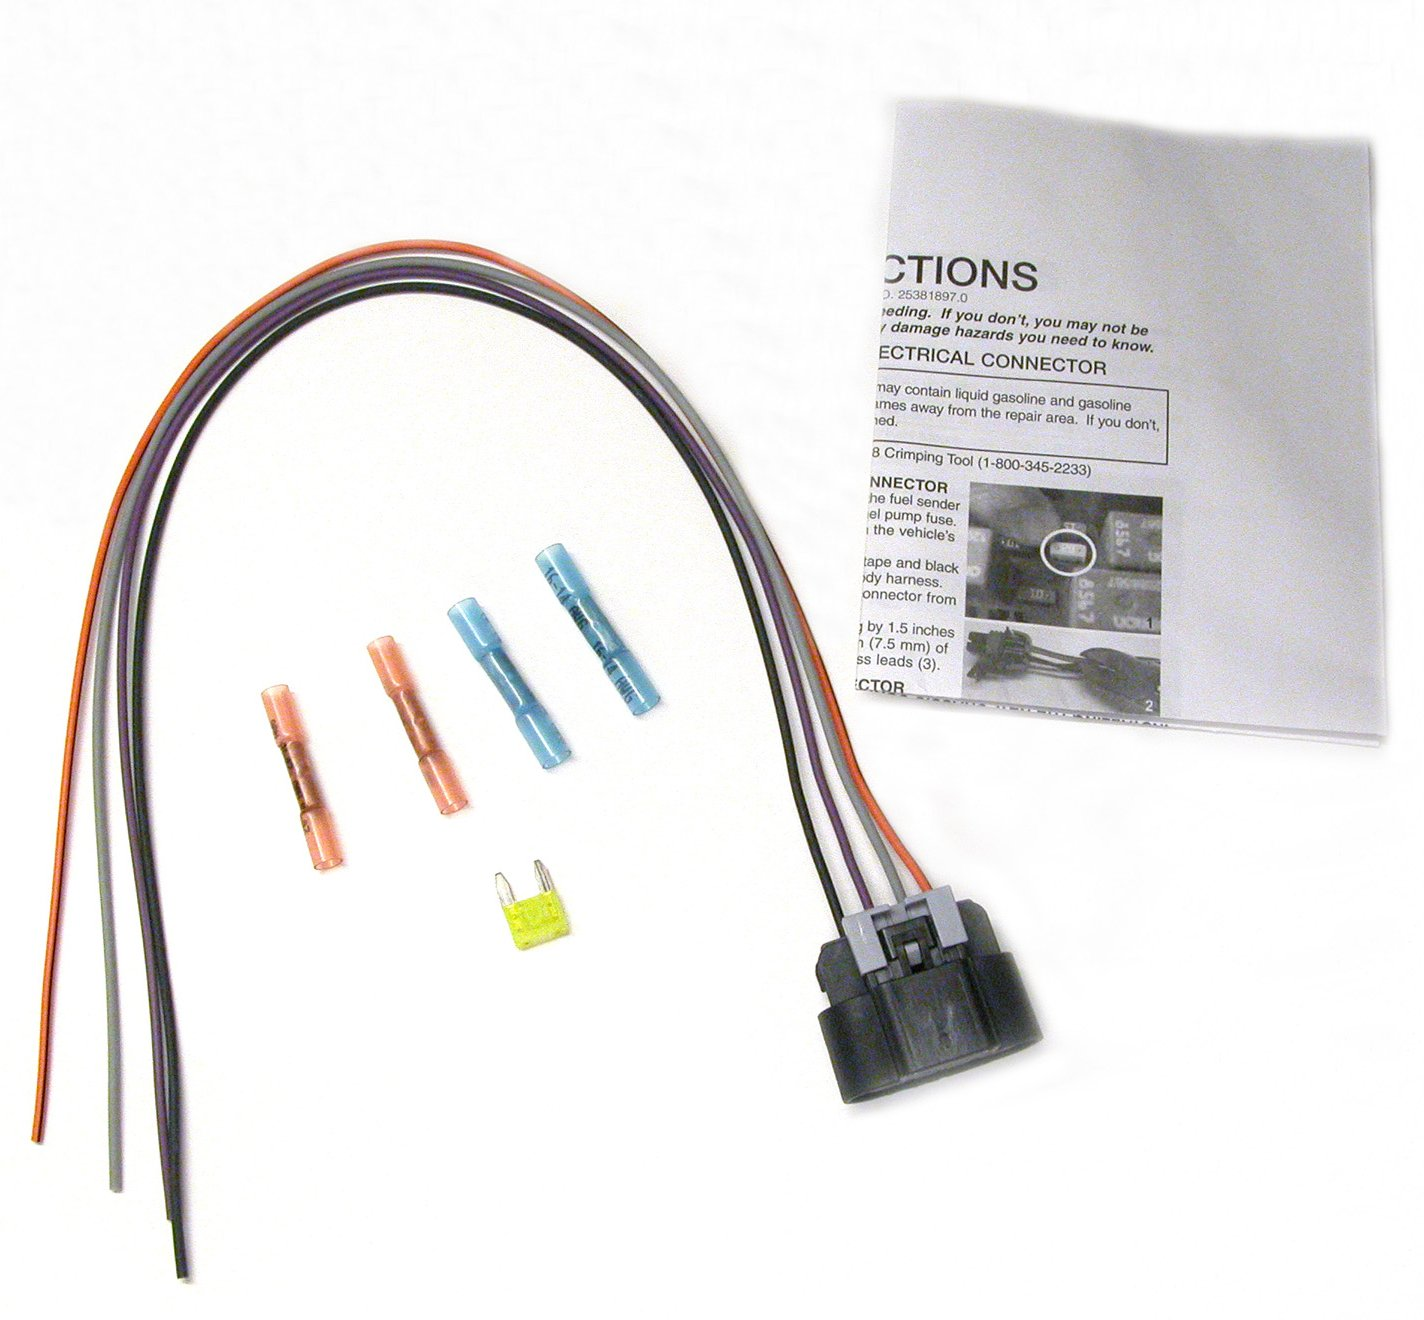 71Grf8PrFuL._SL1424_ amazon com delphi fa10003 fuel pump wiring harness automotive GM Connector Catalog at aneh.co